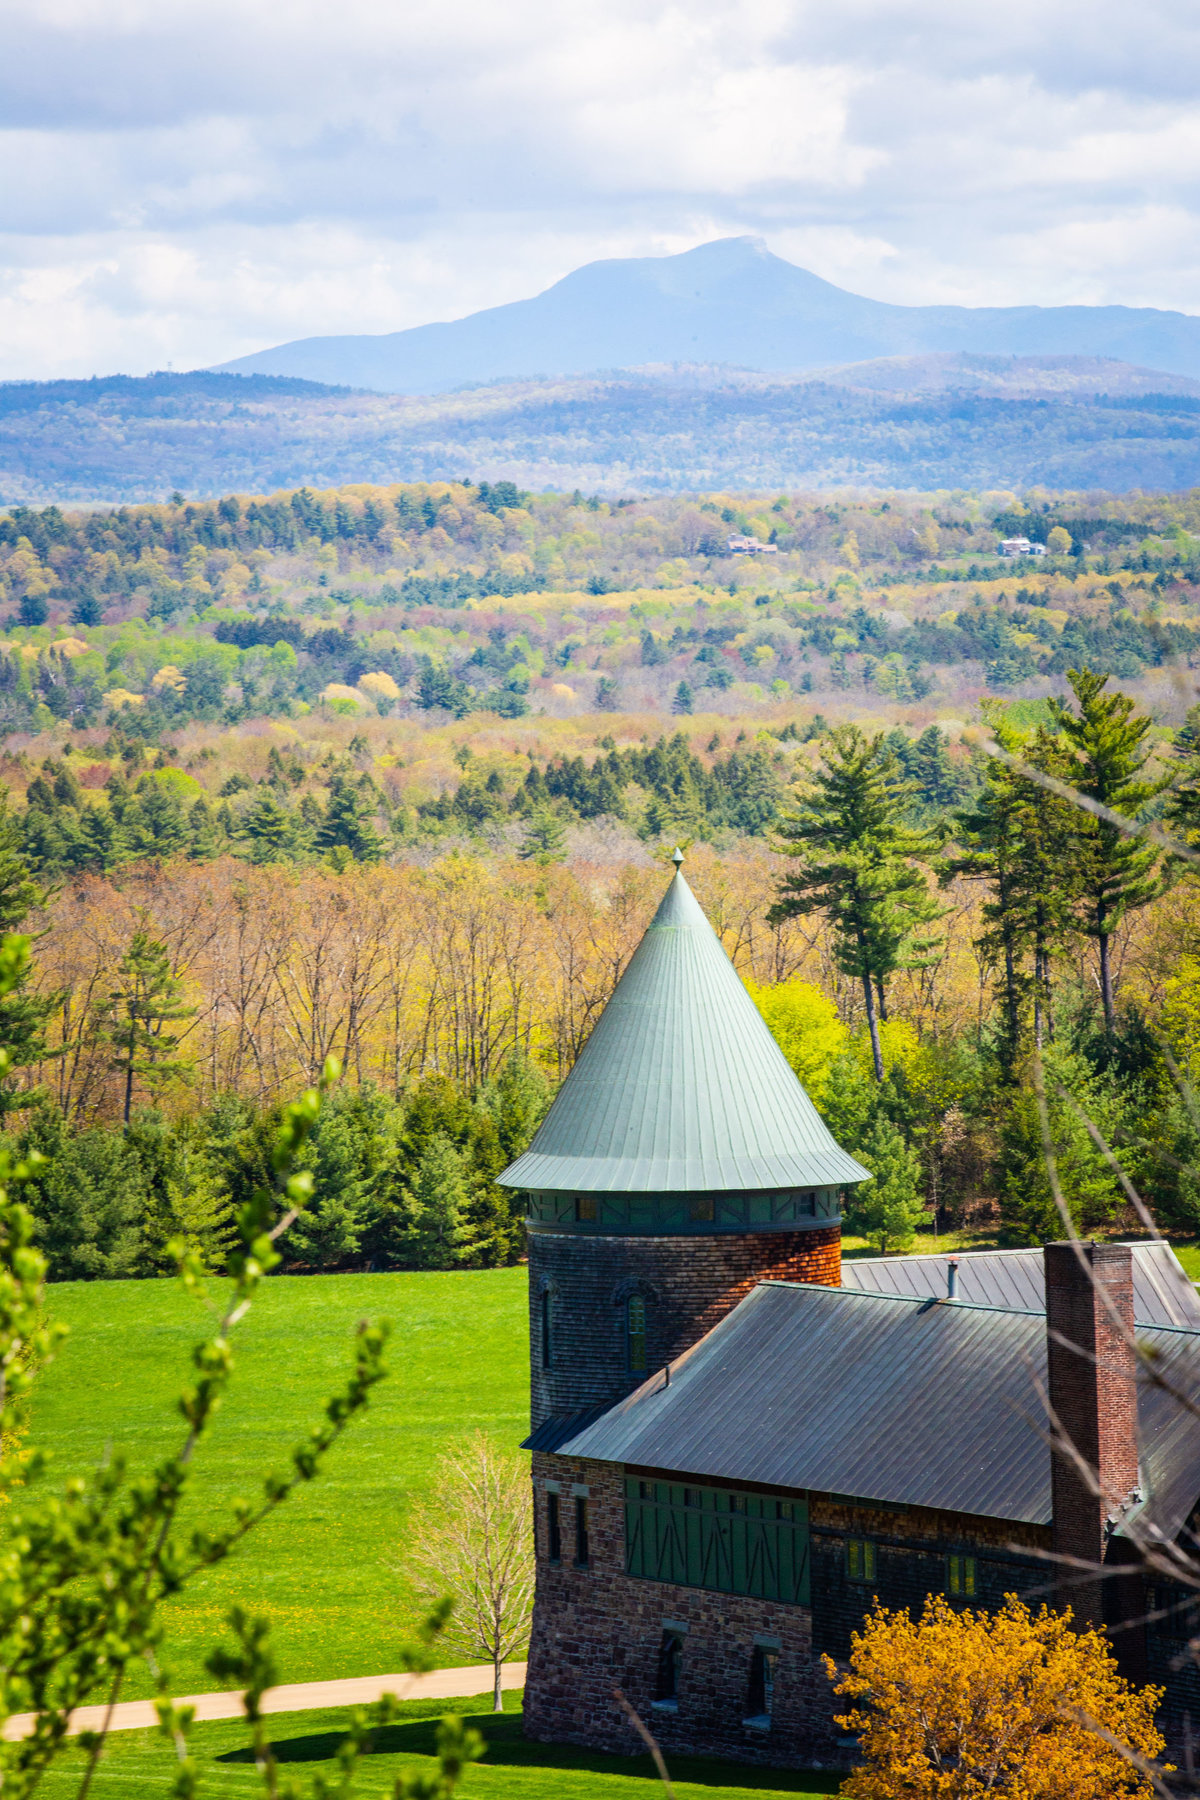 Hall-Potvin Photography Vermont Spring Landscape Photographer-16